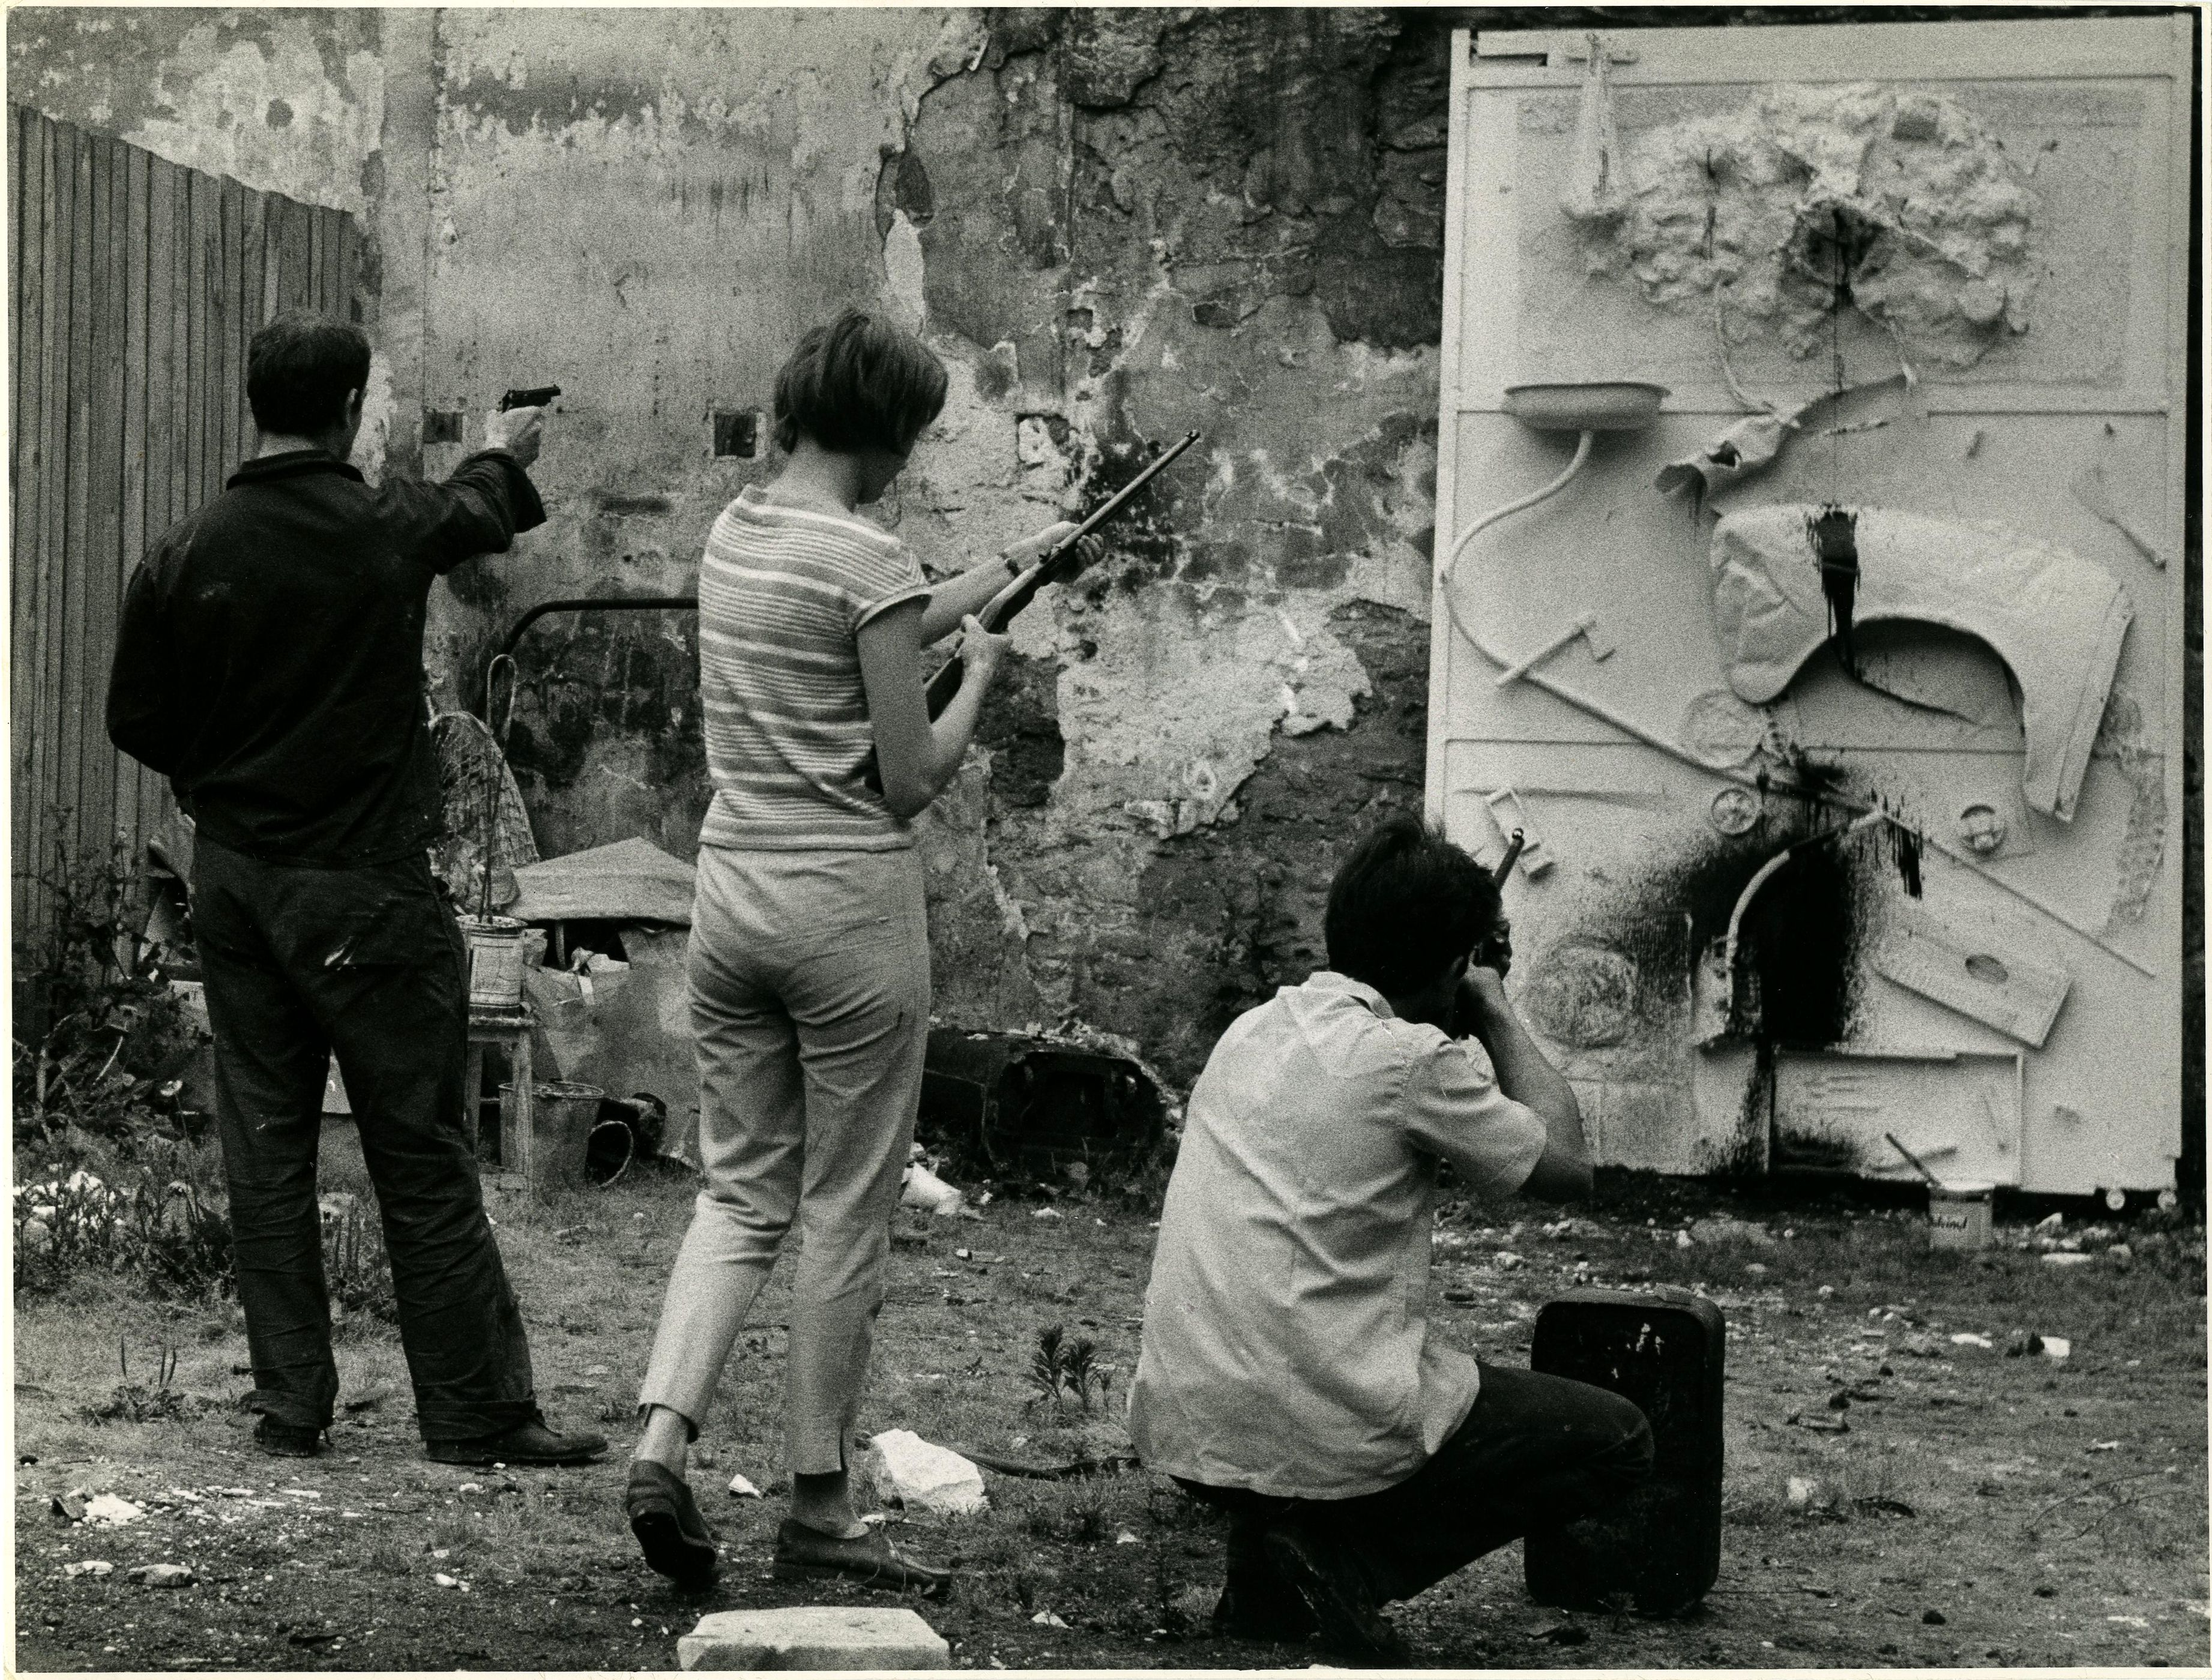 Jean Tinguely (far left) Niki and unidentified man, shooting paint at a nearly finished work, 1961 [photo: Shunk-Kender; © 2008 Niki Charitable Art Foundation, all rights reserved / VG Bild-Kunst Bonn 2012; photo © Roy Lichtenstein Foundation, Shunk-Kender]